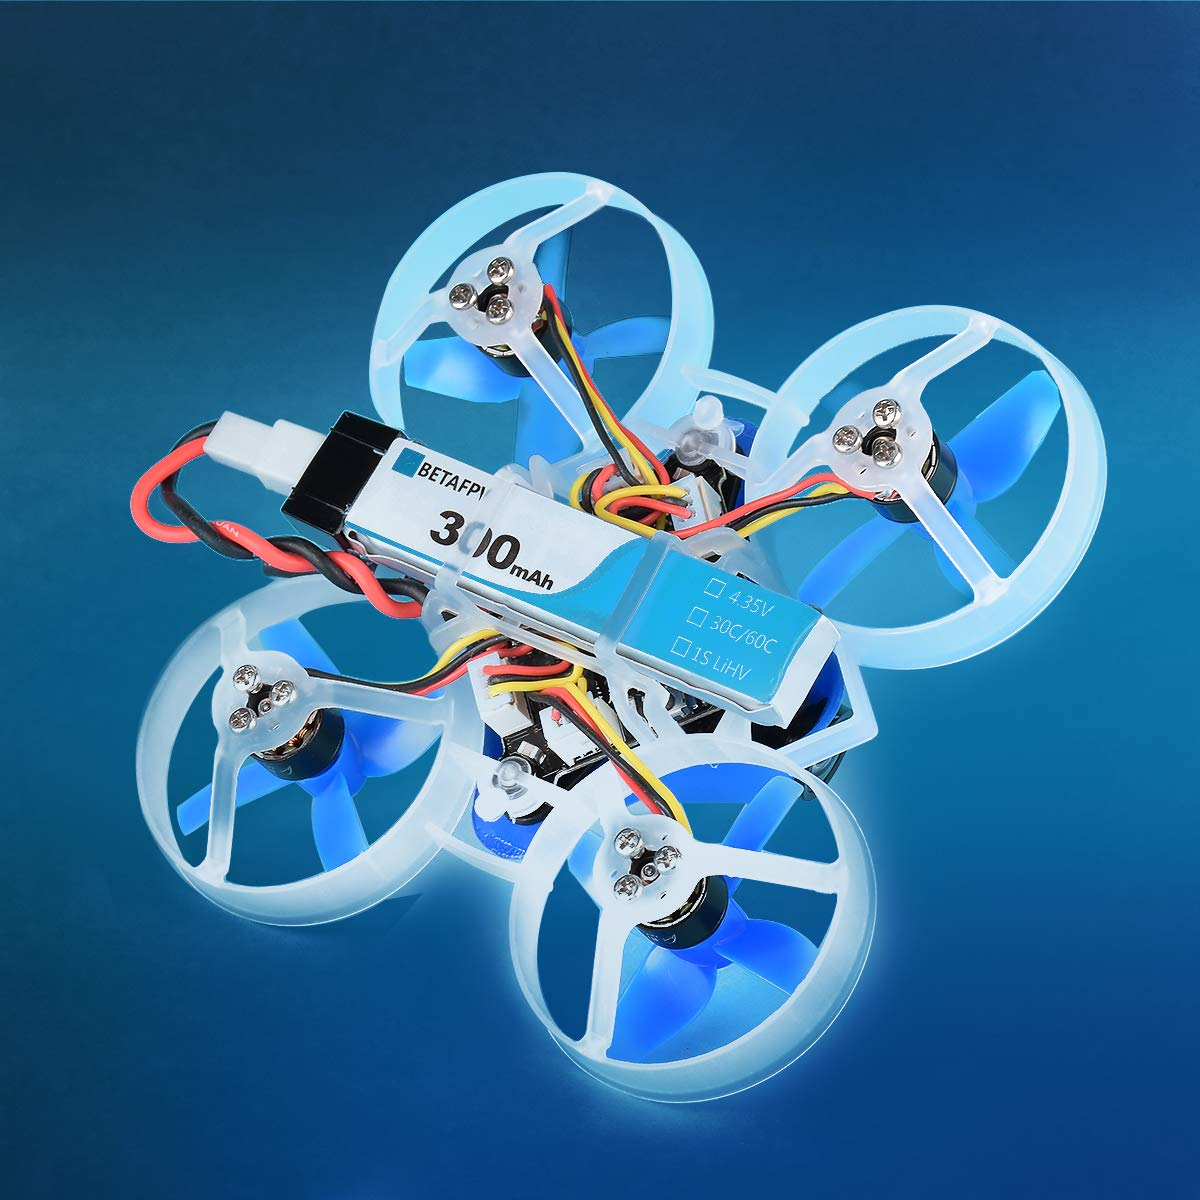 BETAFPV 8pcs 300mAh HV 1S Lipo Battery 30C 4.35V with JST-PH 2.0 Powerwhoop Connector for Tiny Whoop Blade Inductrix by BETAFPV (Image #7)